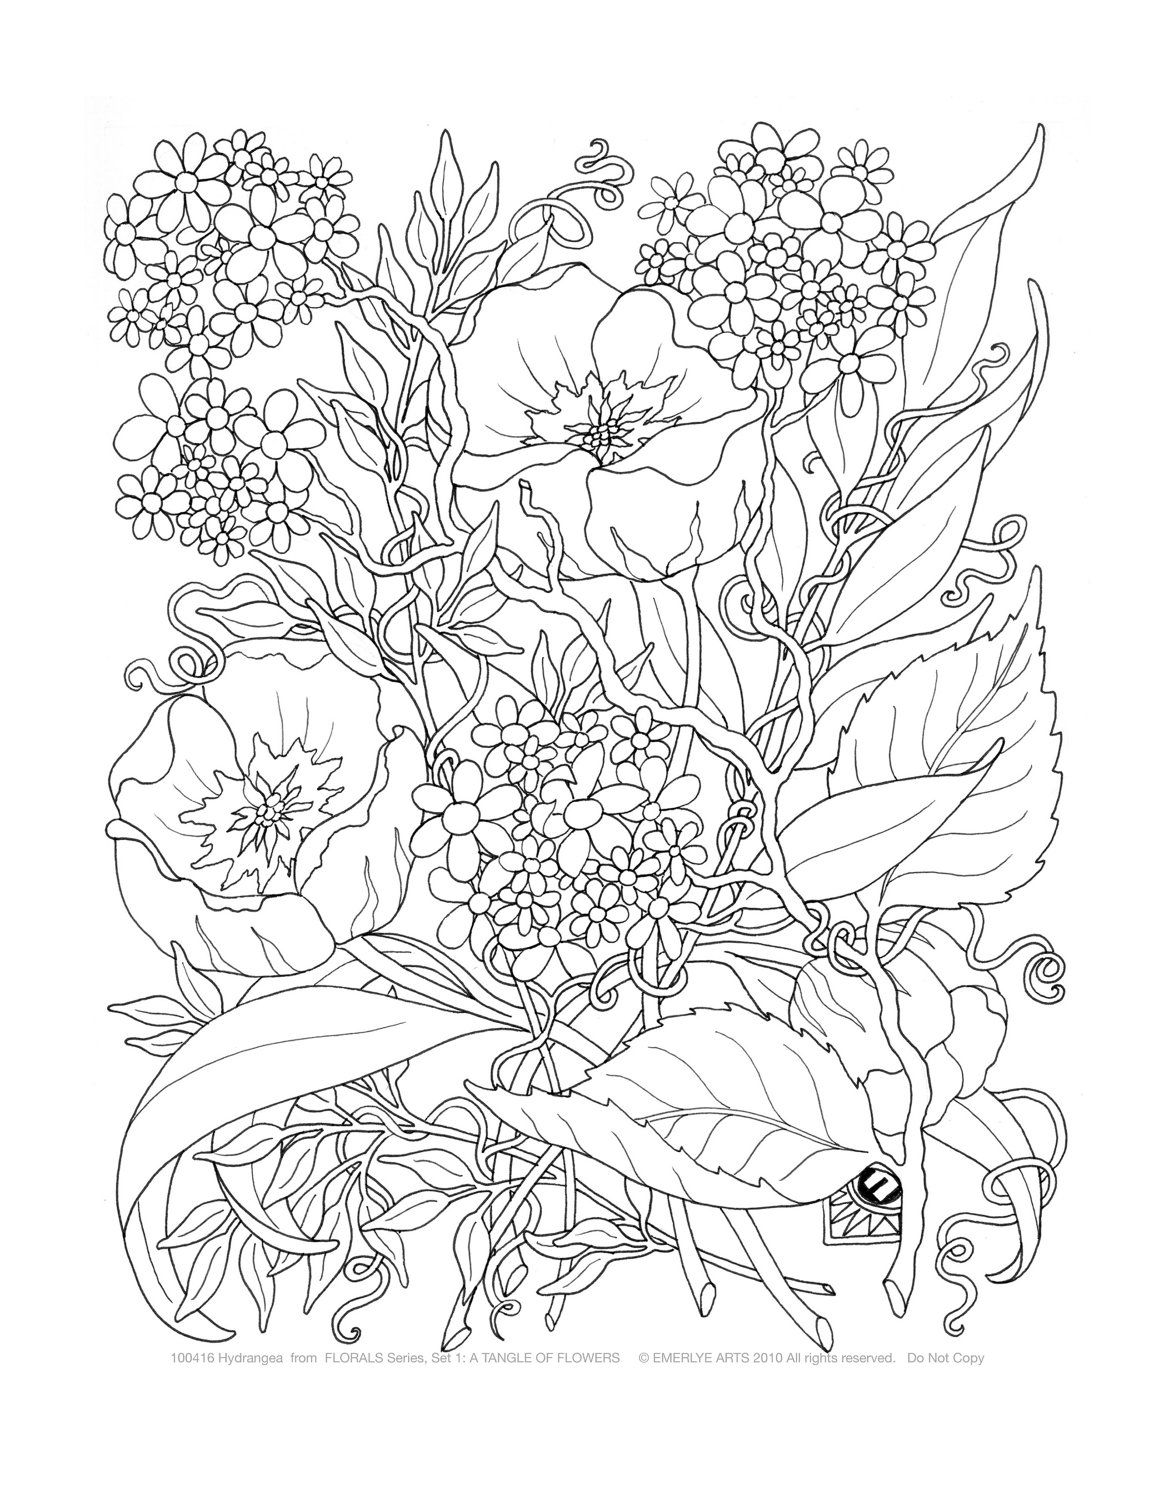 Coloring Pages Coloring Pages For Adult adult coloring pages a tangle of flowers set 8 by emerlyearts